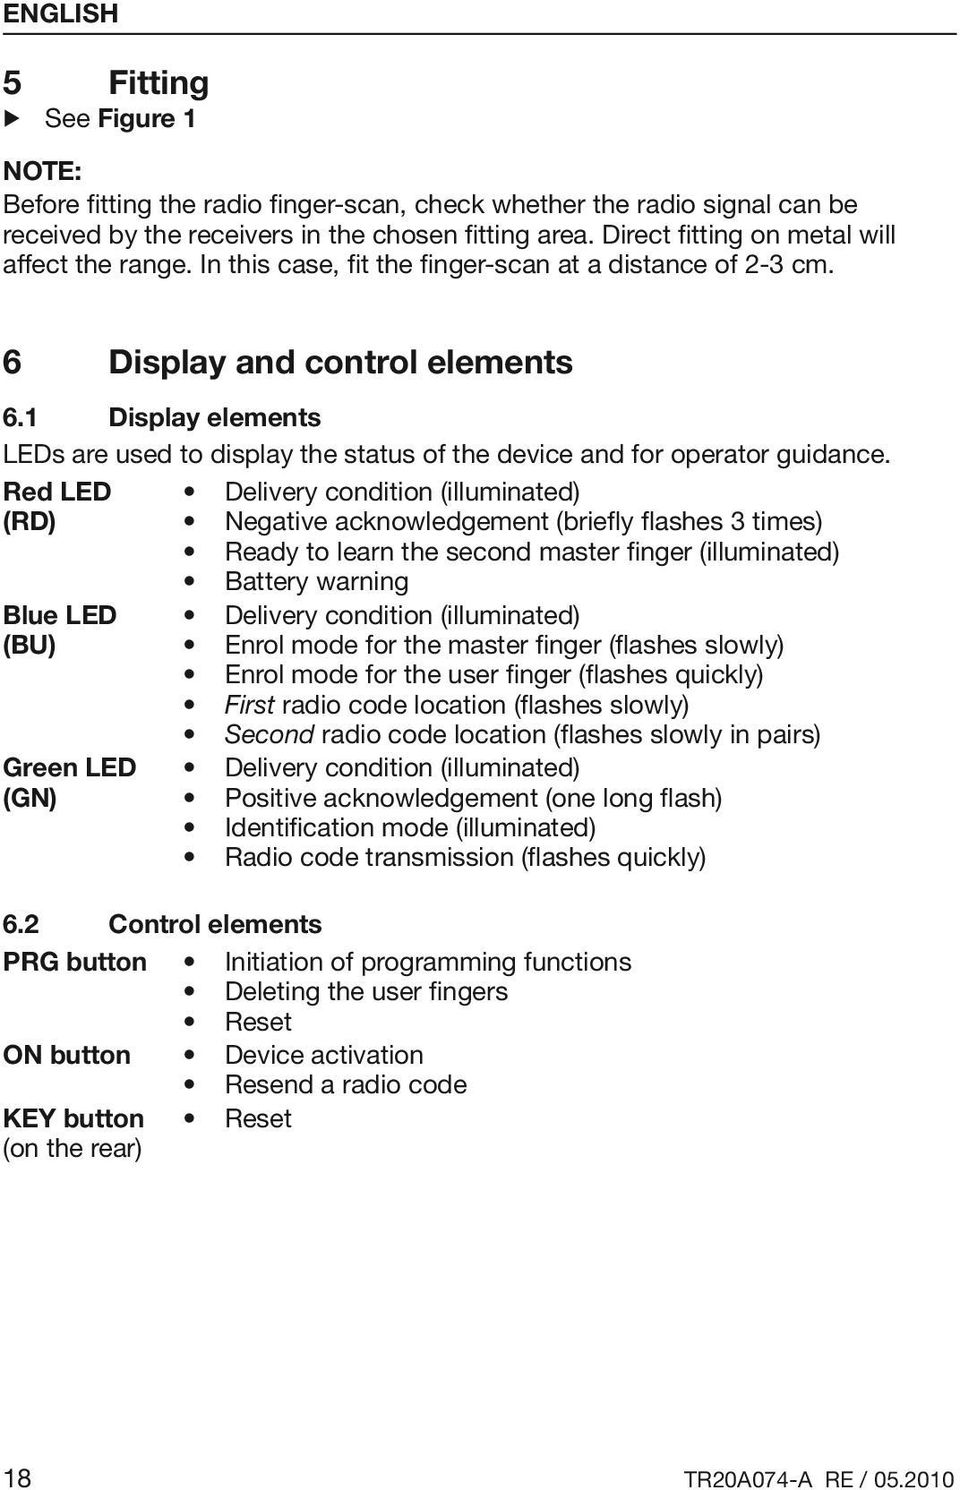 1 Display elements LEDs are used to display the status of the device and for operator guidance.